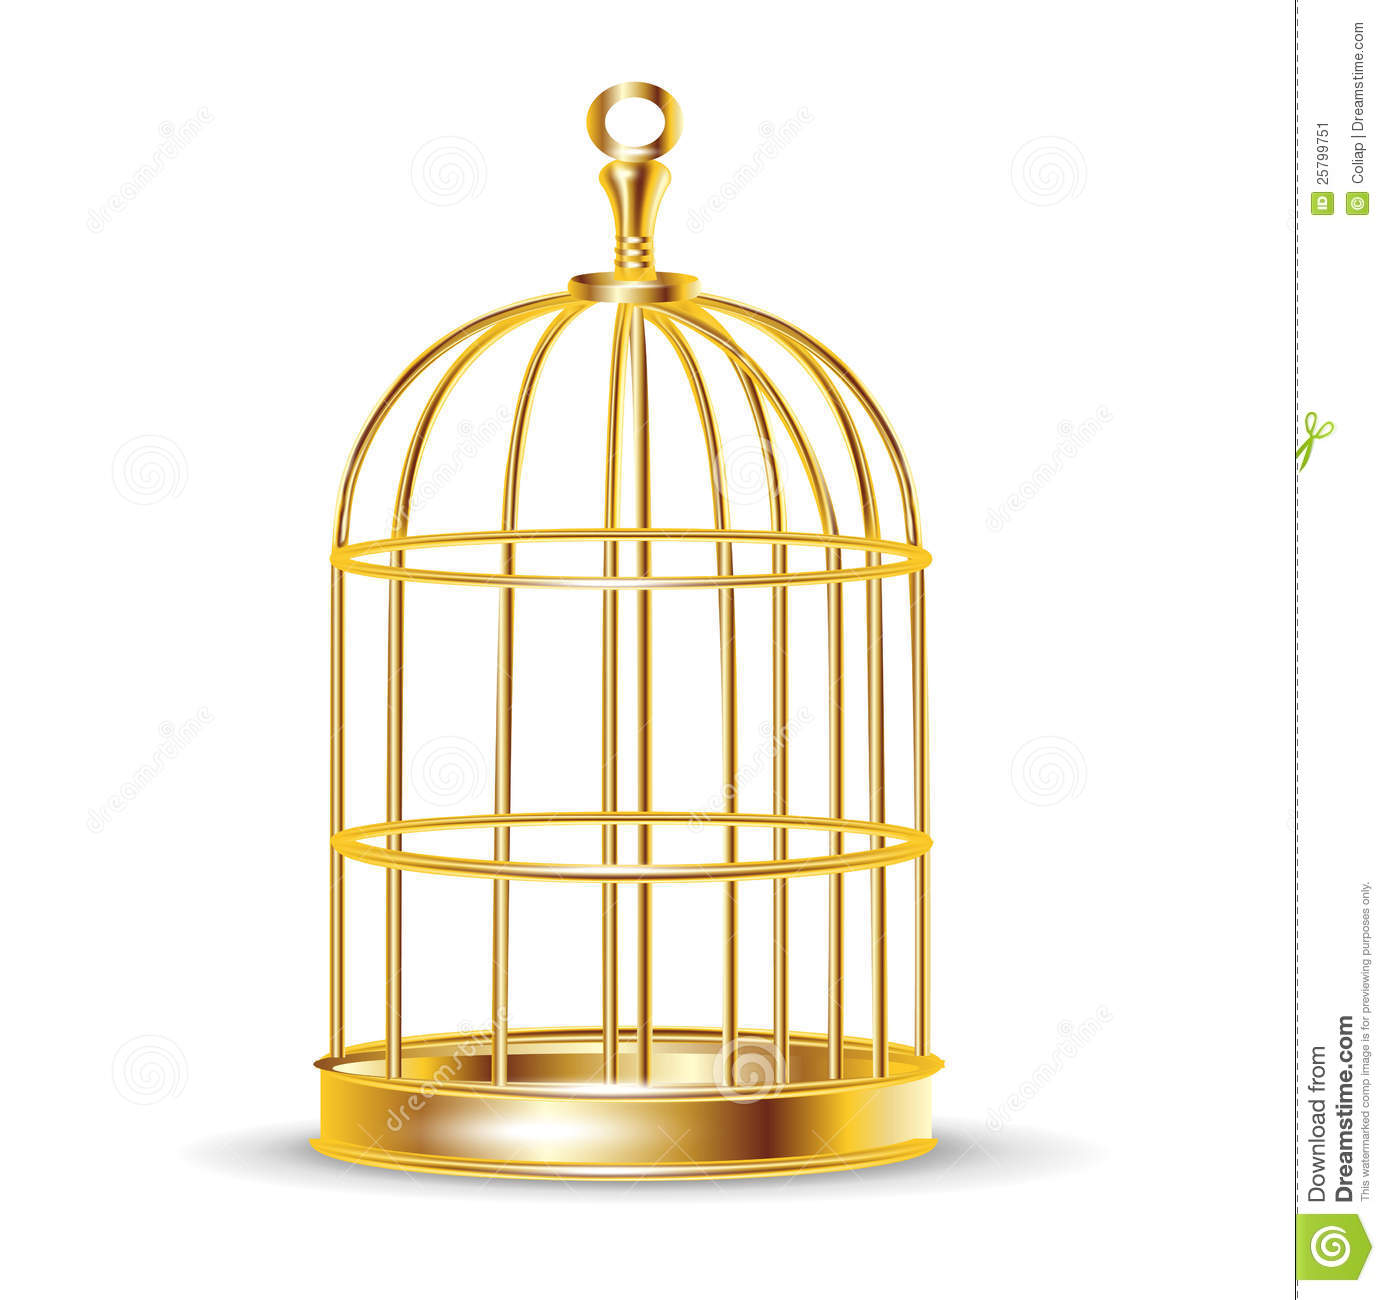 Parrot clipart cage Etc In cage Collection Cages